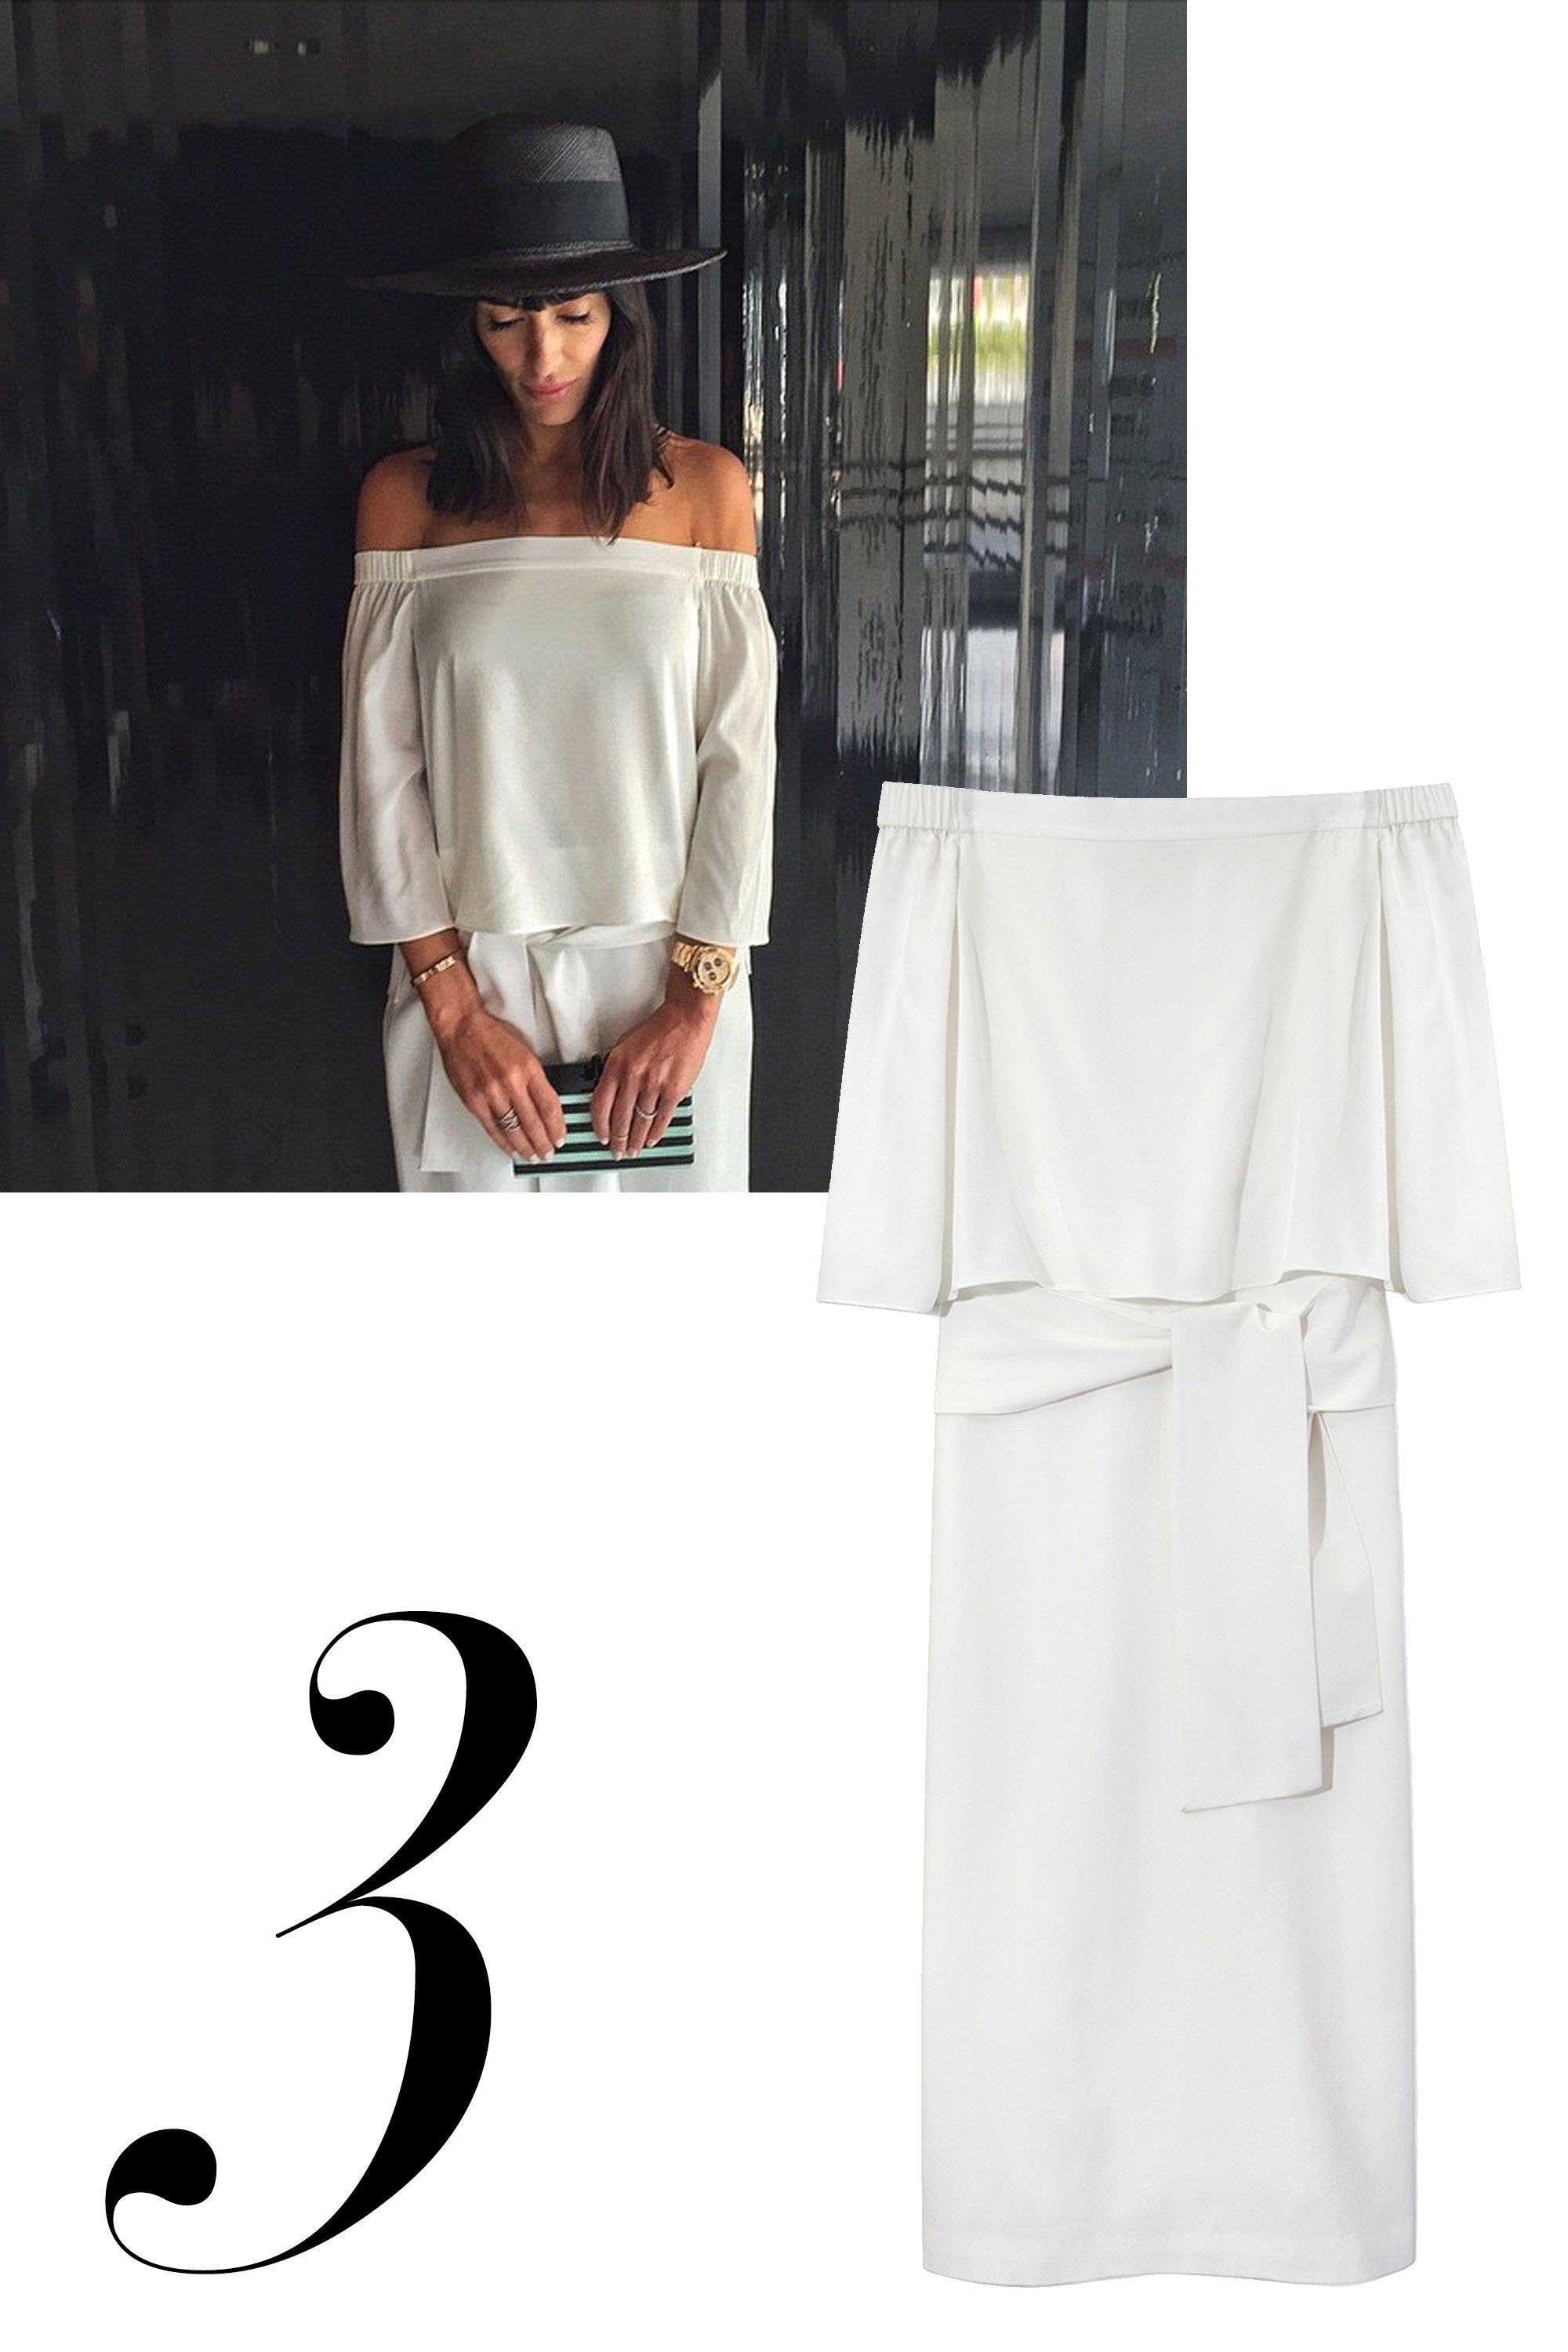 Athena Calderone, @eyeswoon